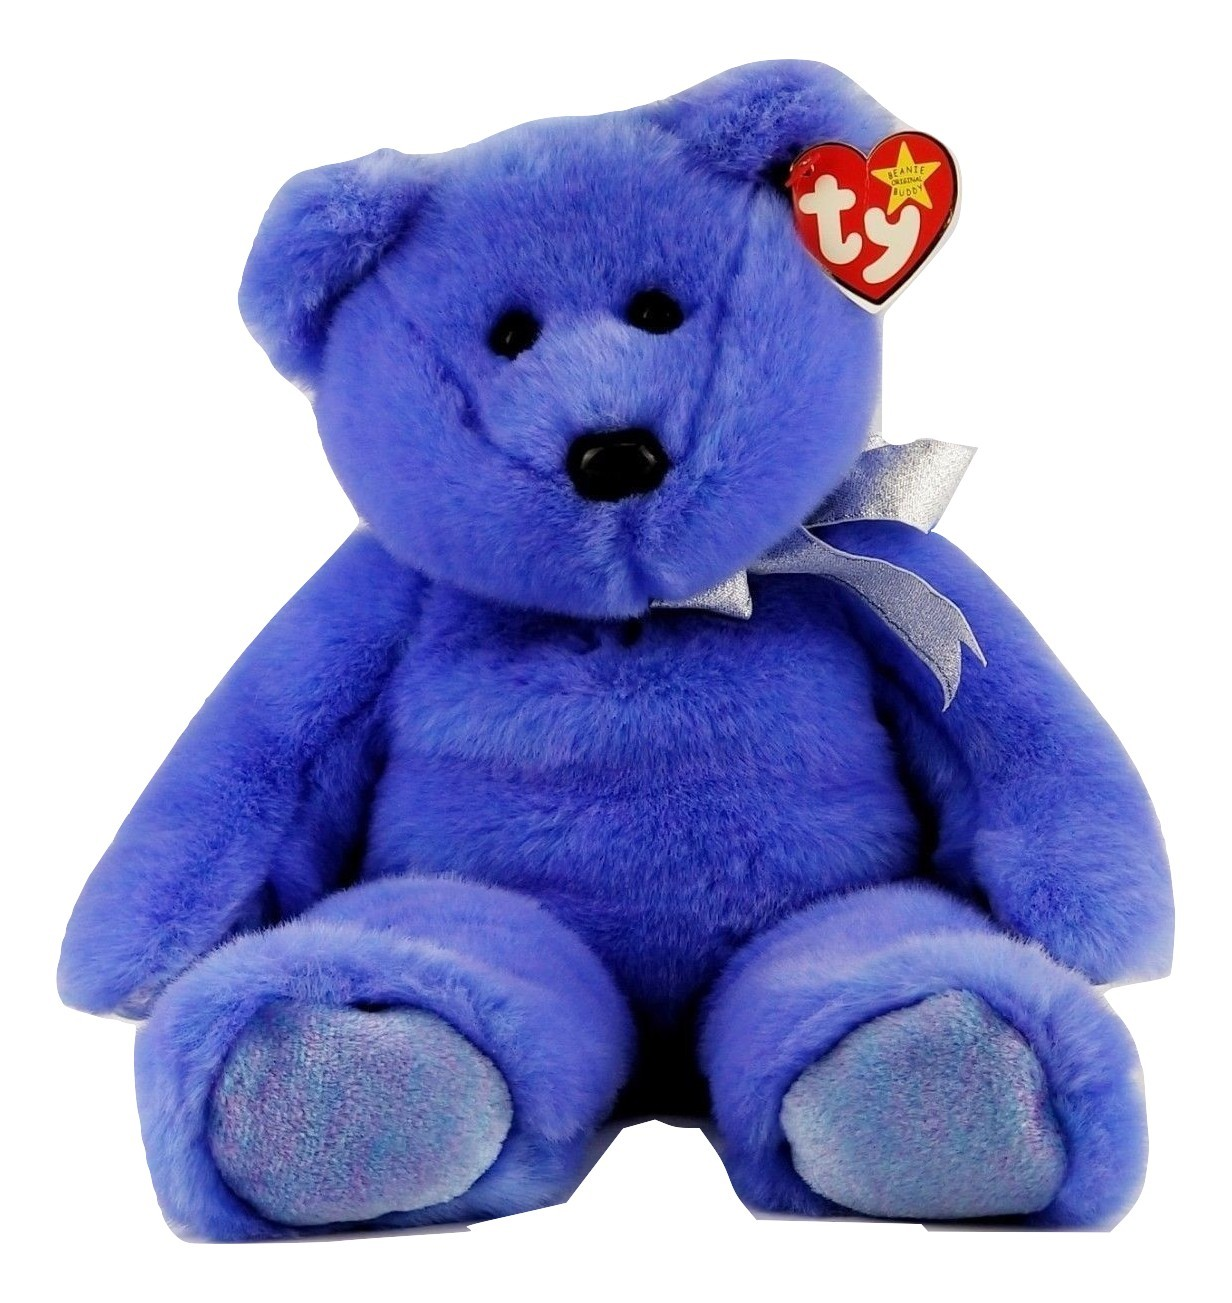 Ty Large Plush Beanie Buddy Clubby II Bear and 50 similar items. Img  7014090888 1543110731 f4101b9c6712